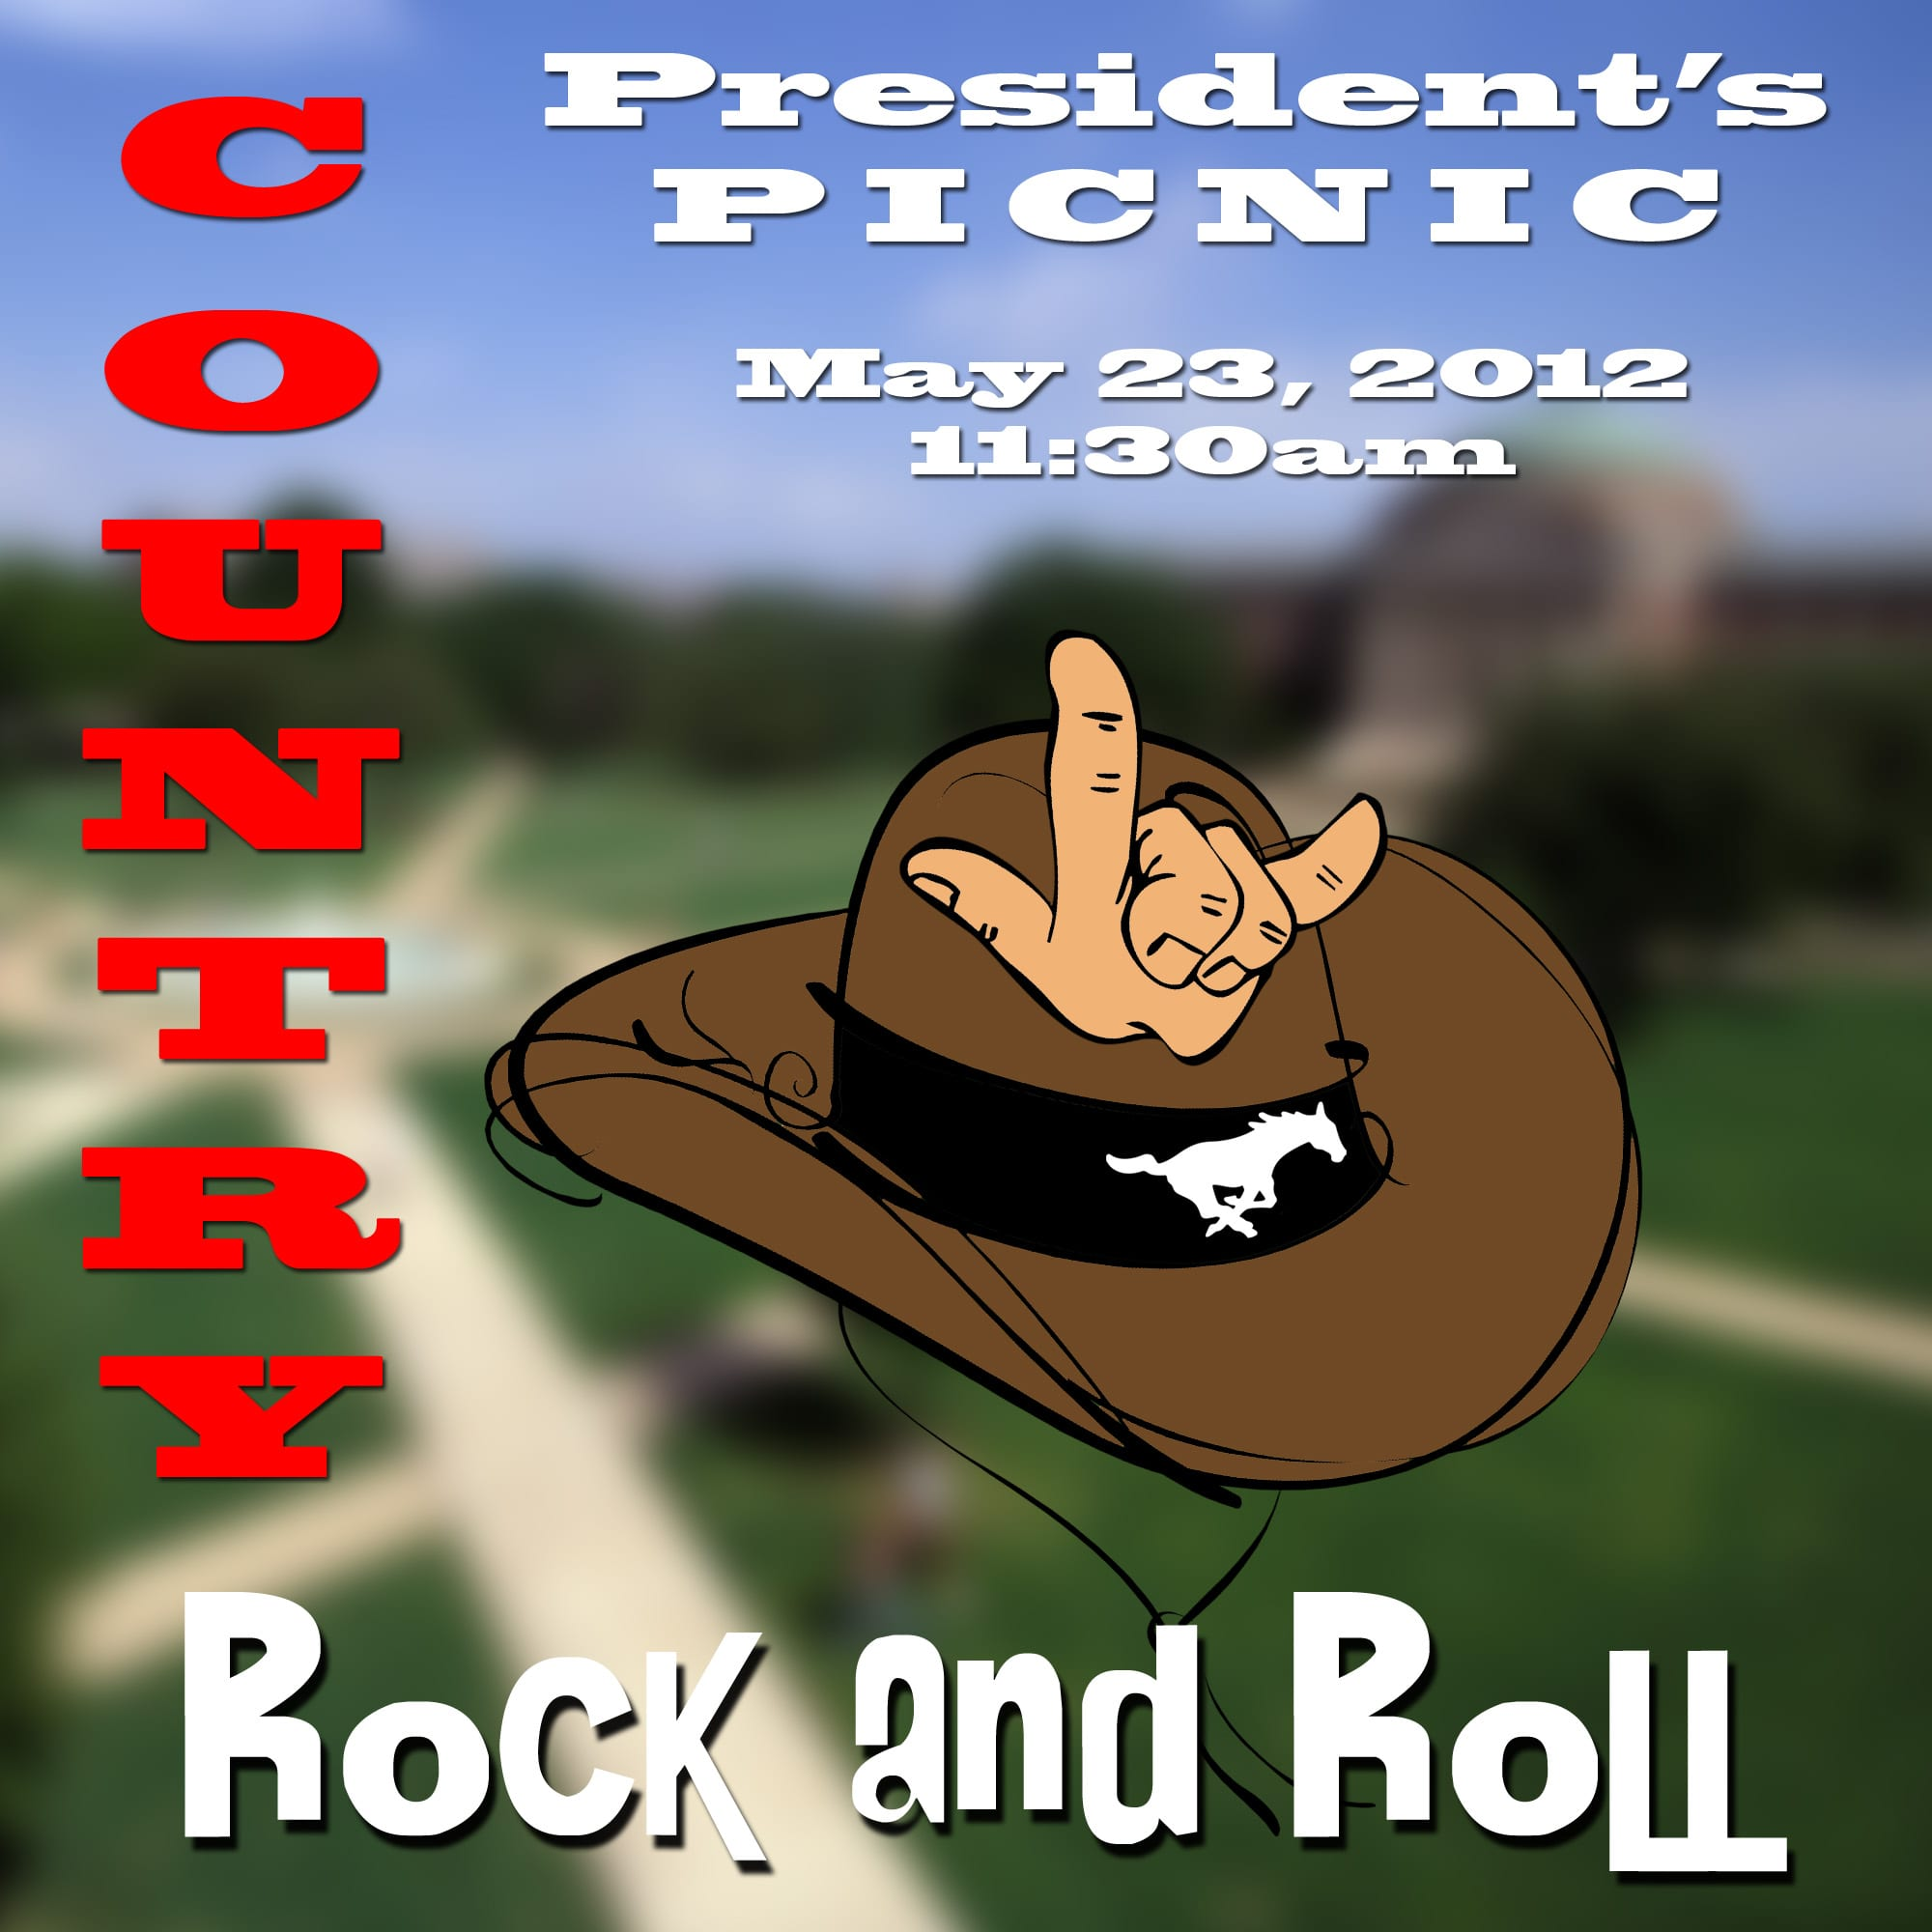 SMU Staff Association 2012 President's Picnic postcard